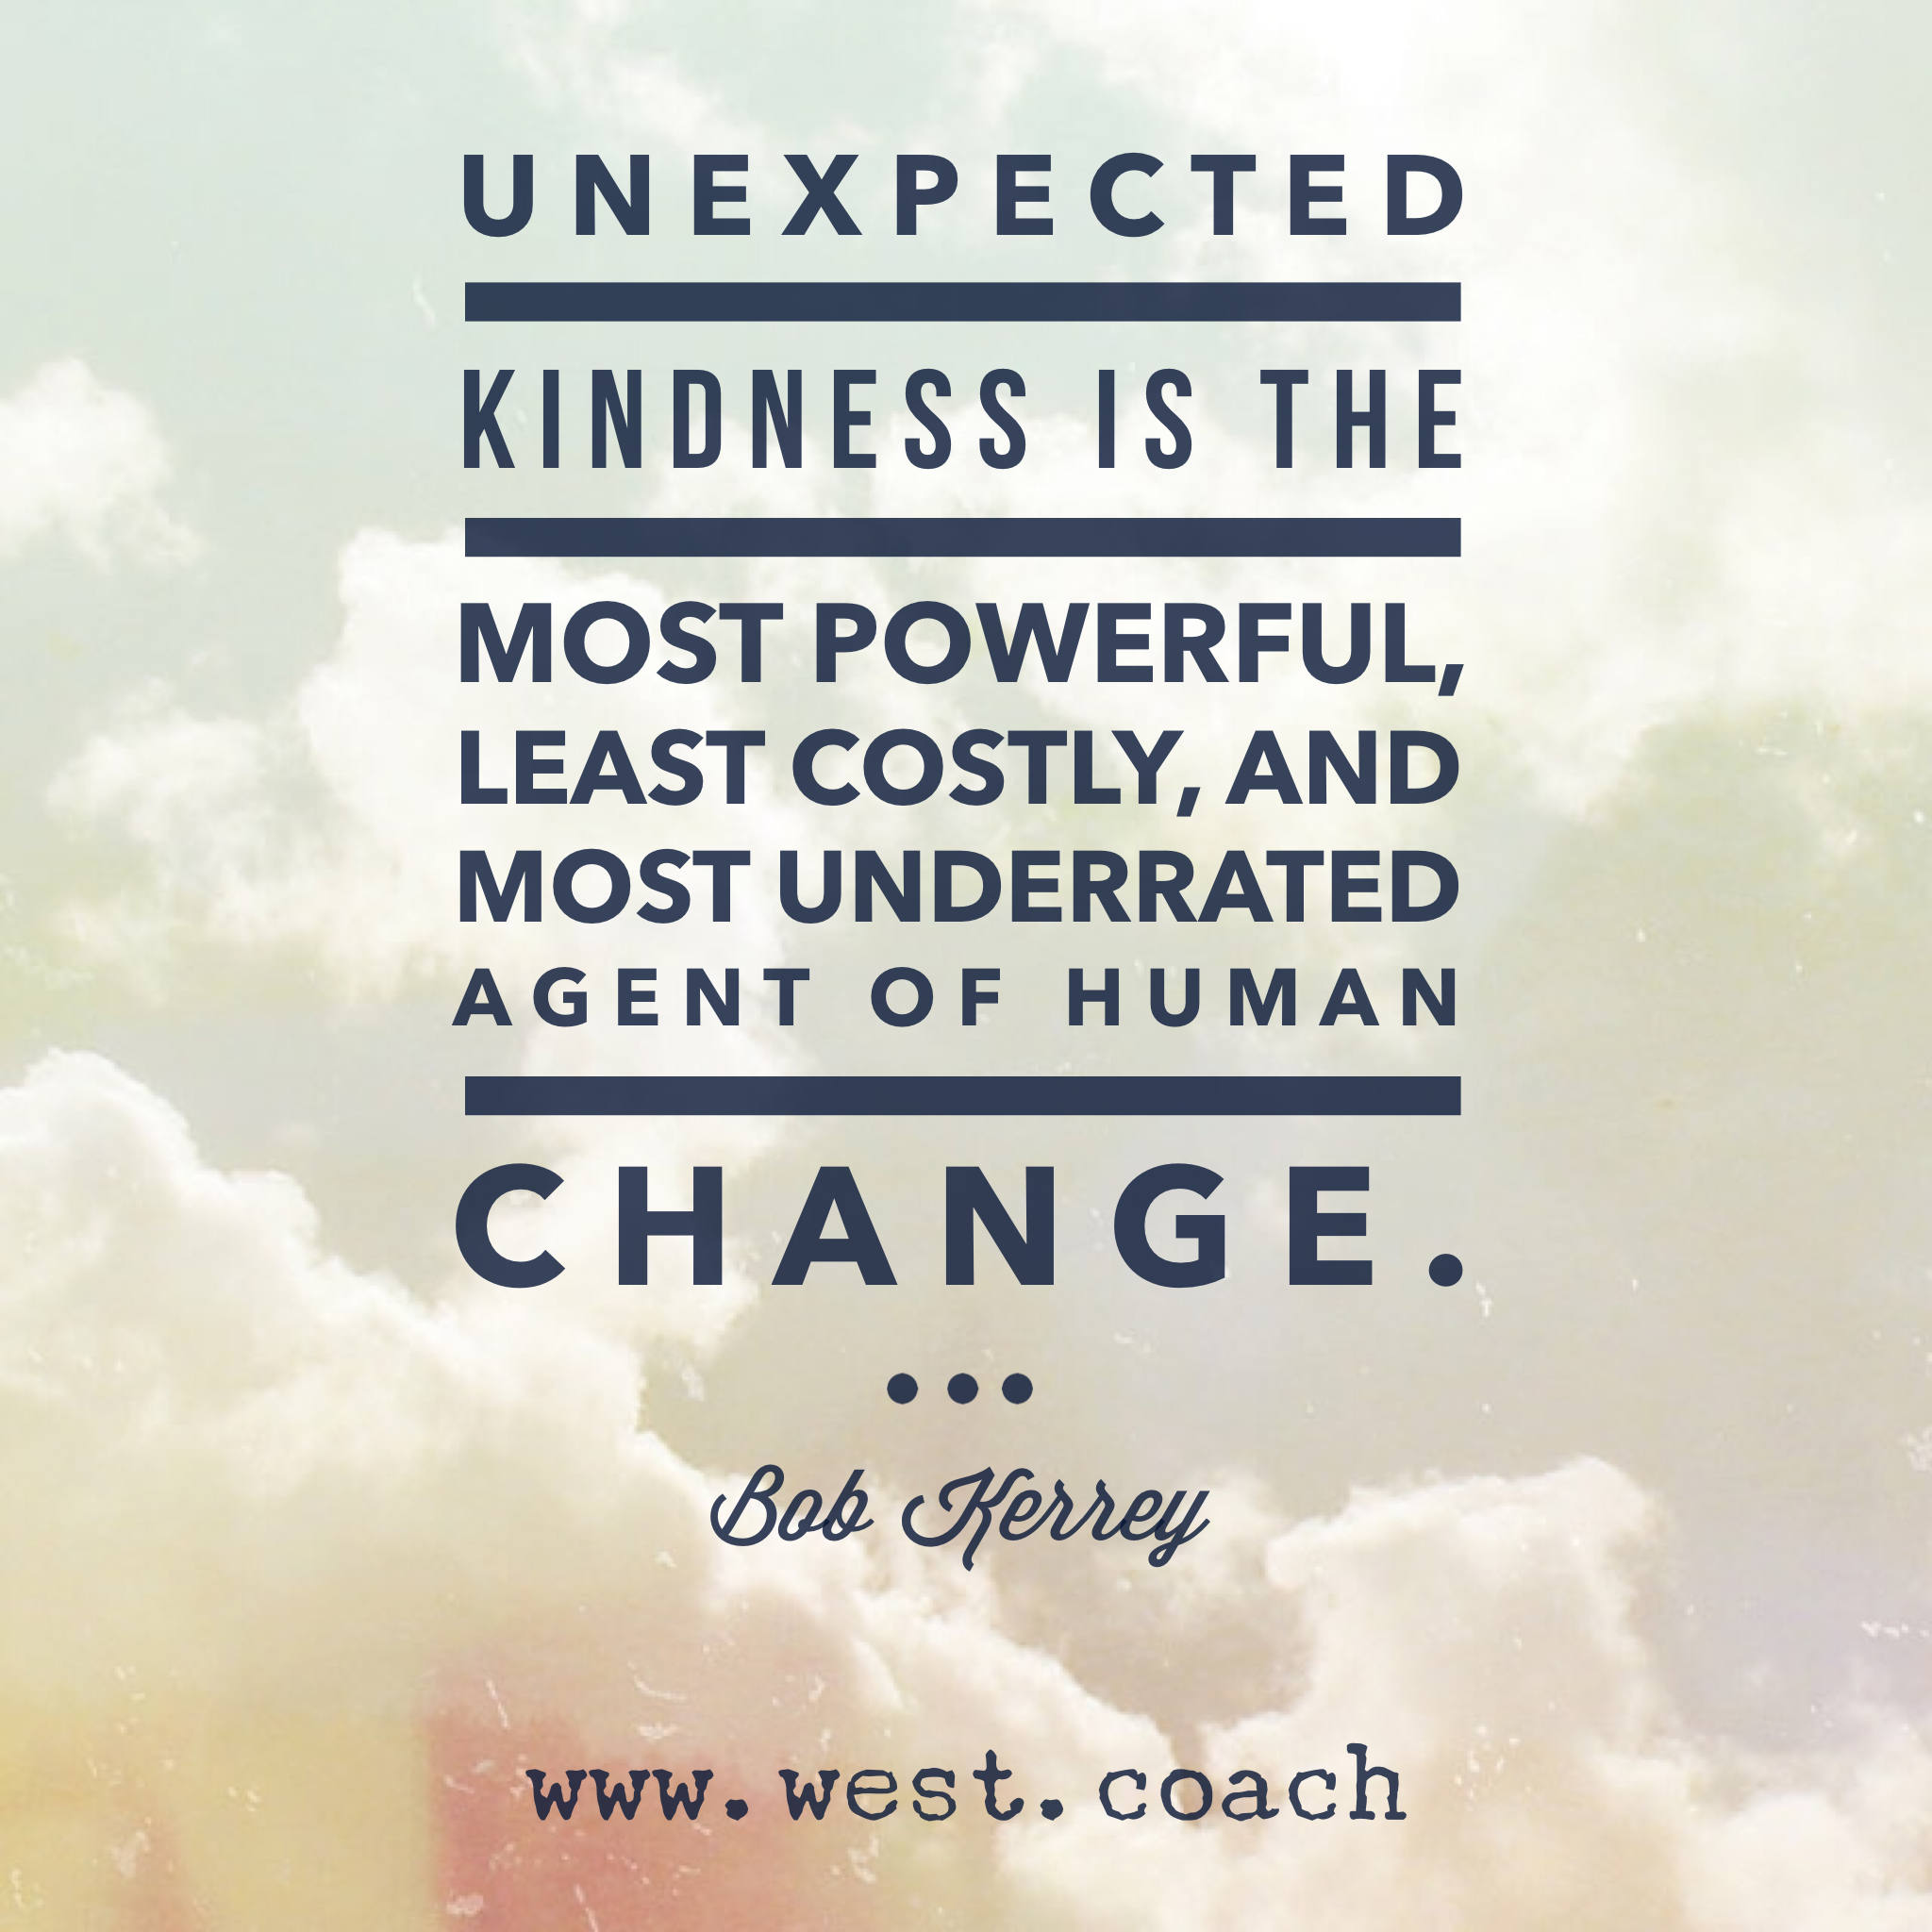 Unexpected kindness is the most powerful, least costly